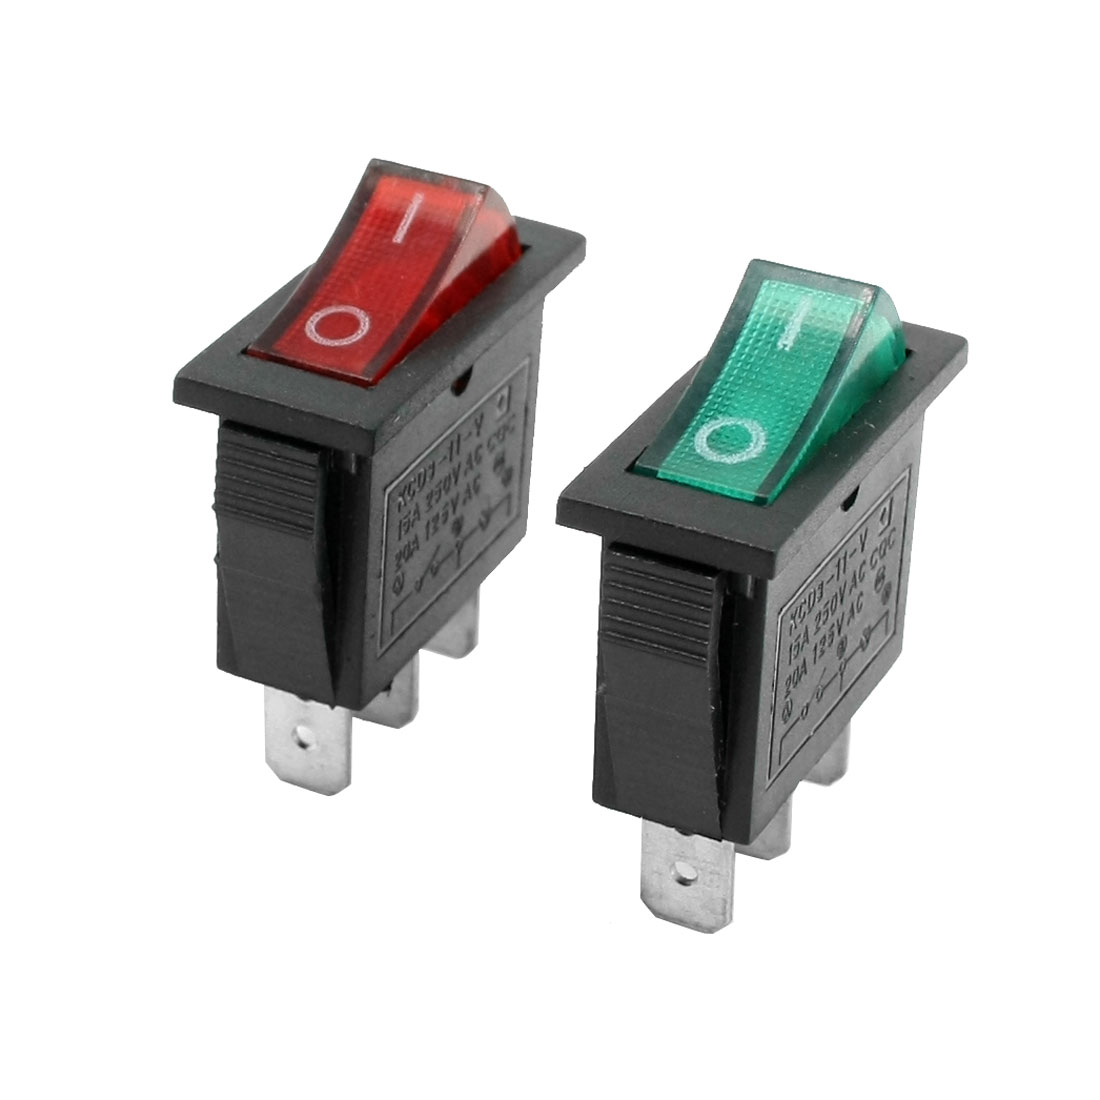 SPST Red Green Light Snap in Rocker Switch AC 15A 250V 125V 20A 2 Pcs